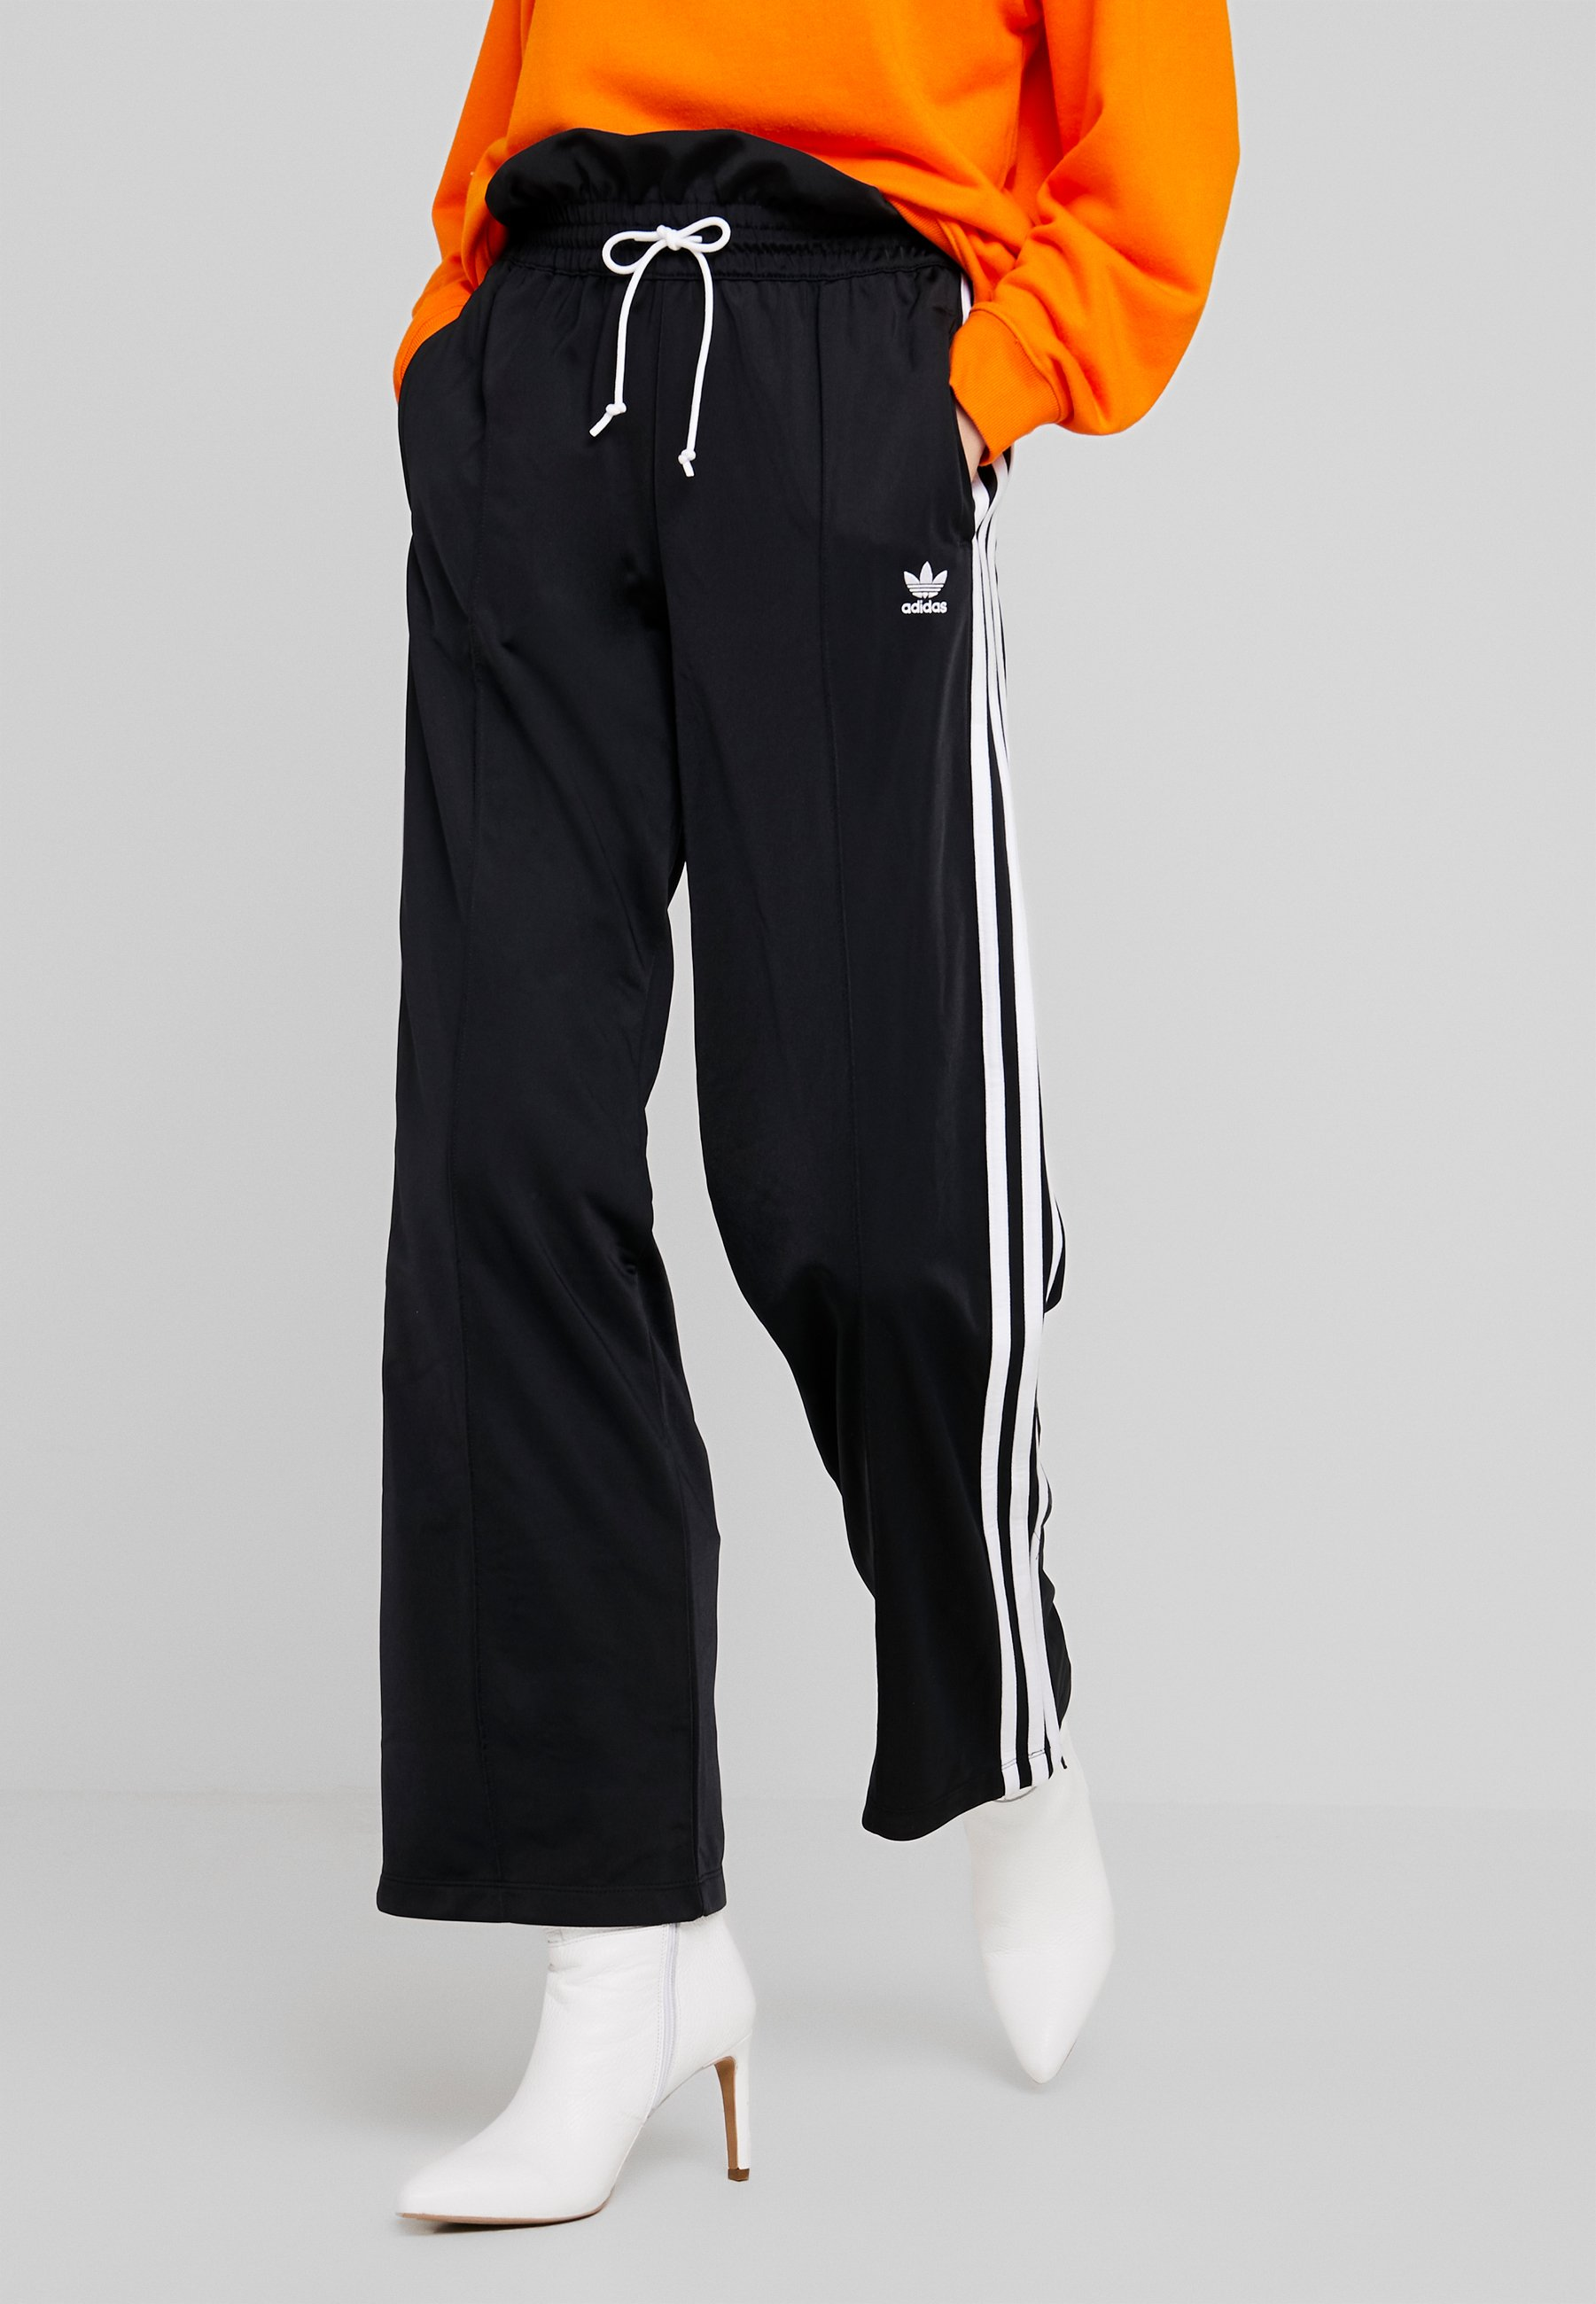 Bellista 3 Stripes Pants   Pantalones Deportivos by Adidas Originals